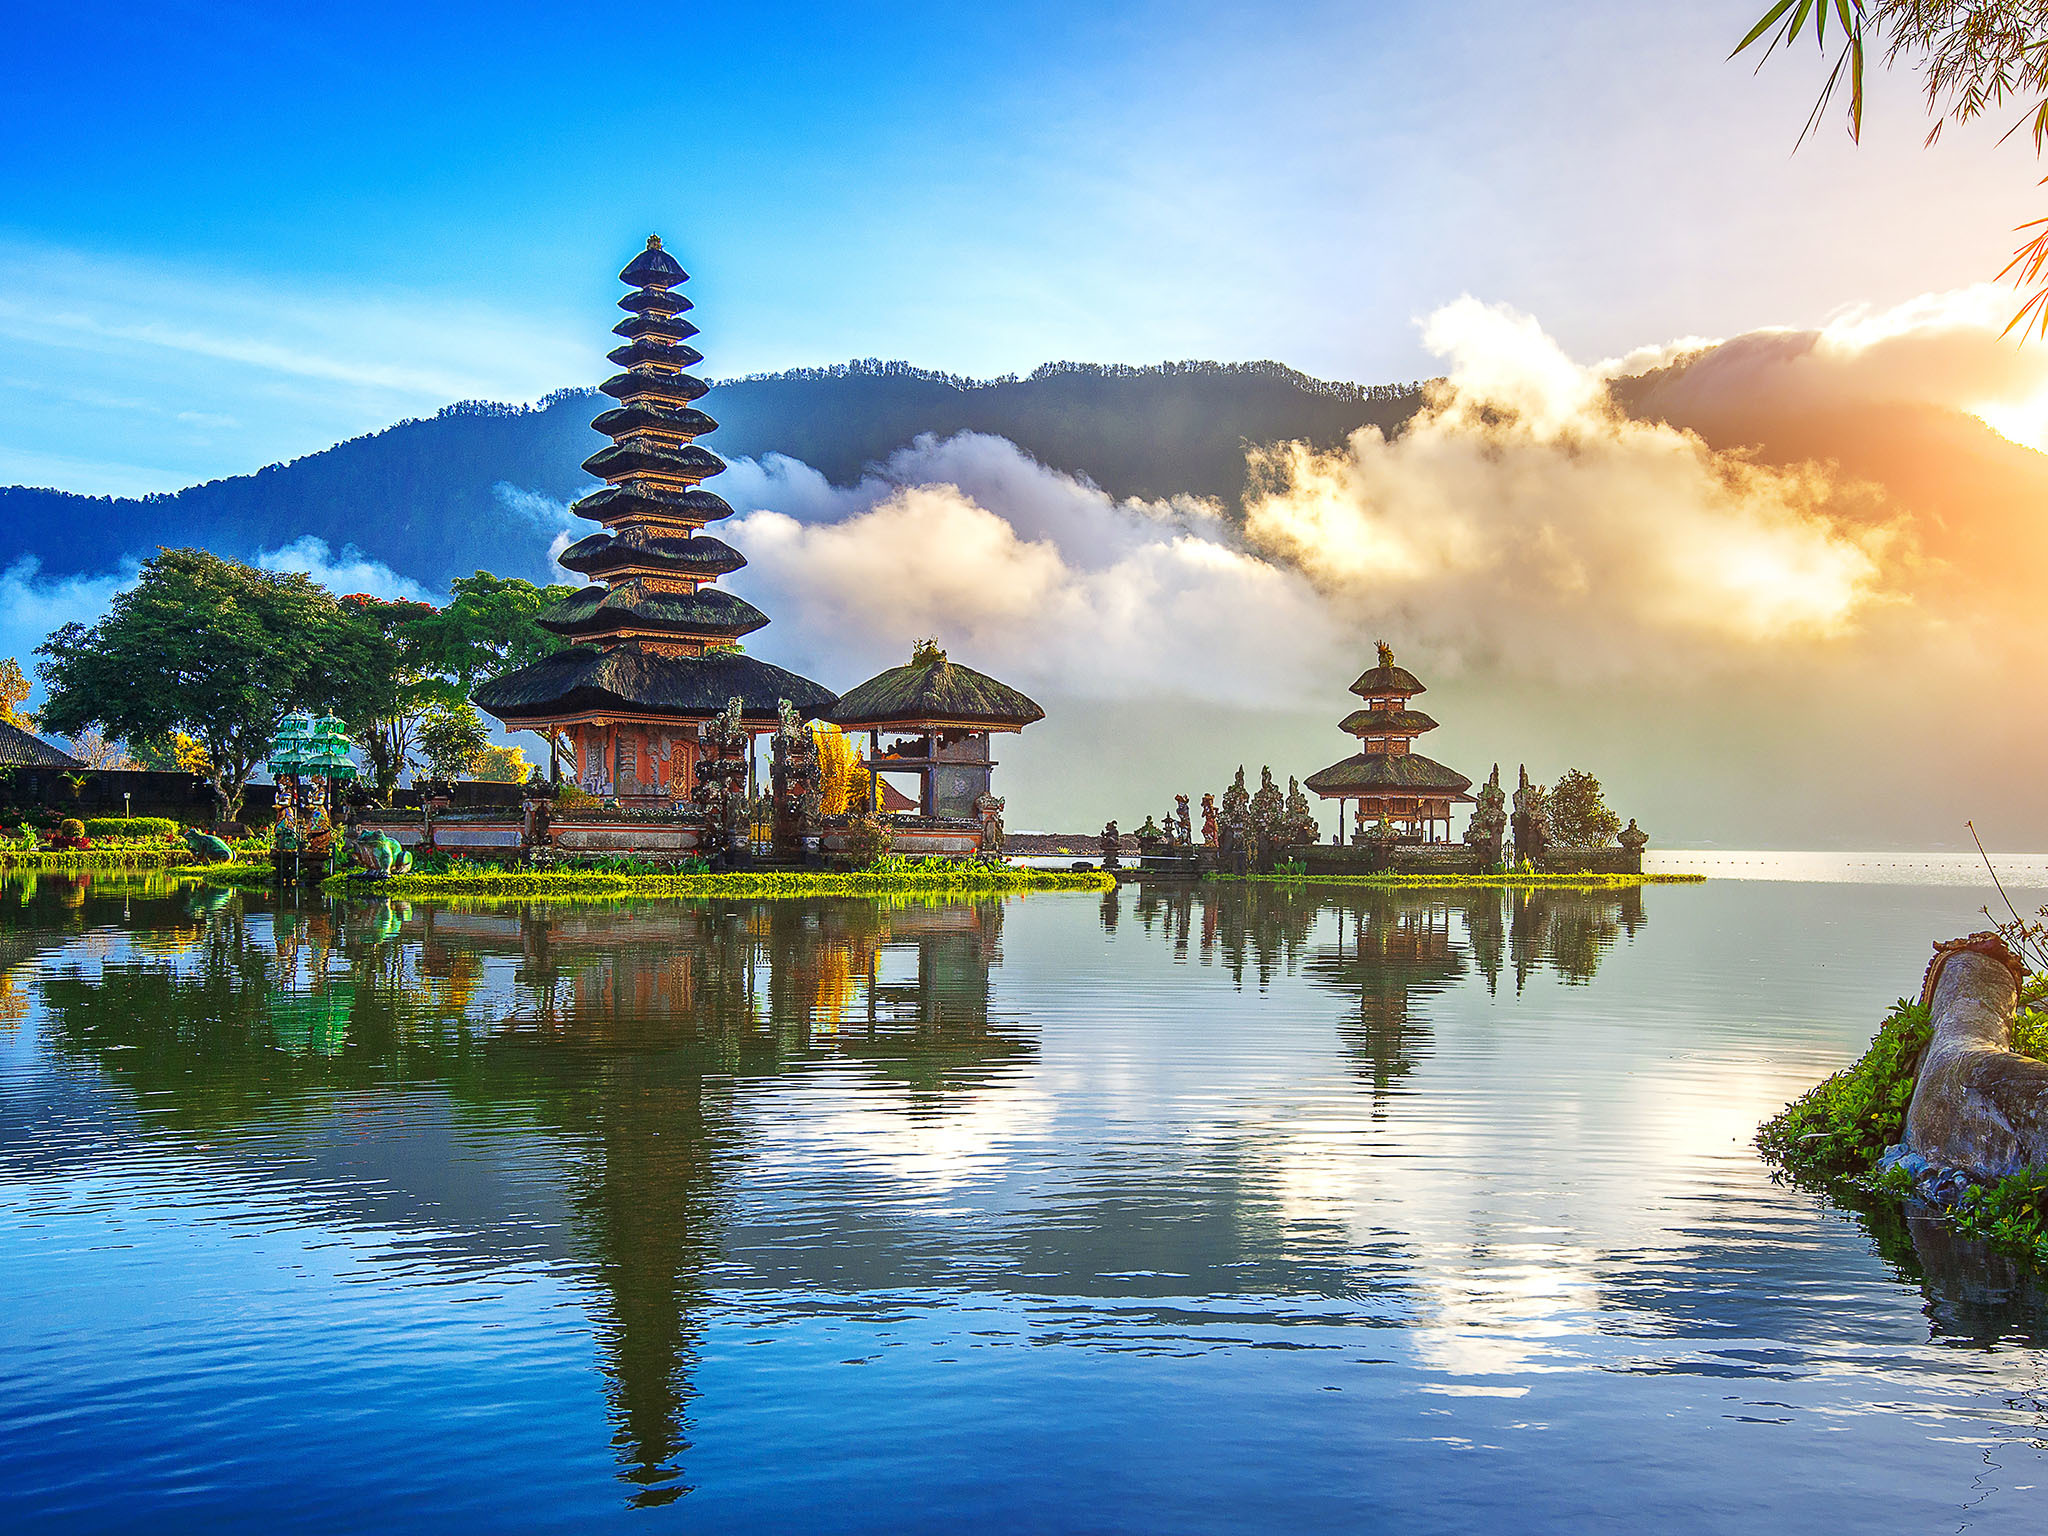 Things to do in Bali | 19 Attractions and Activities